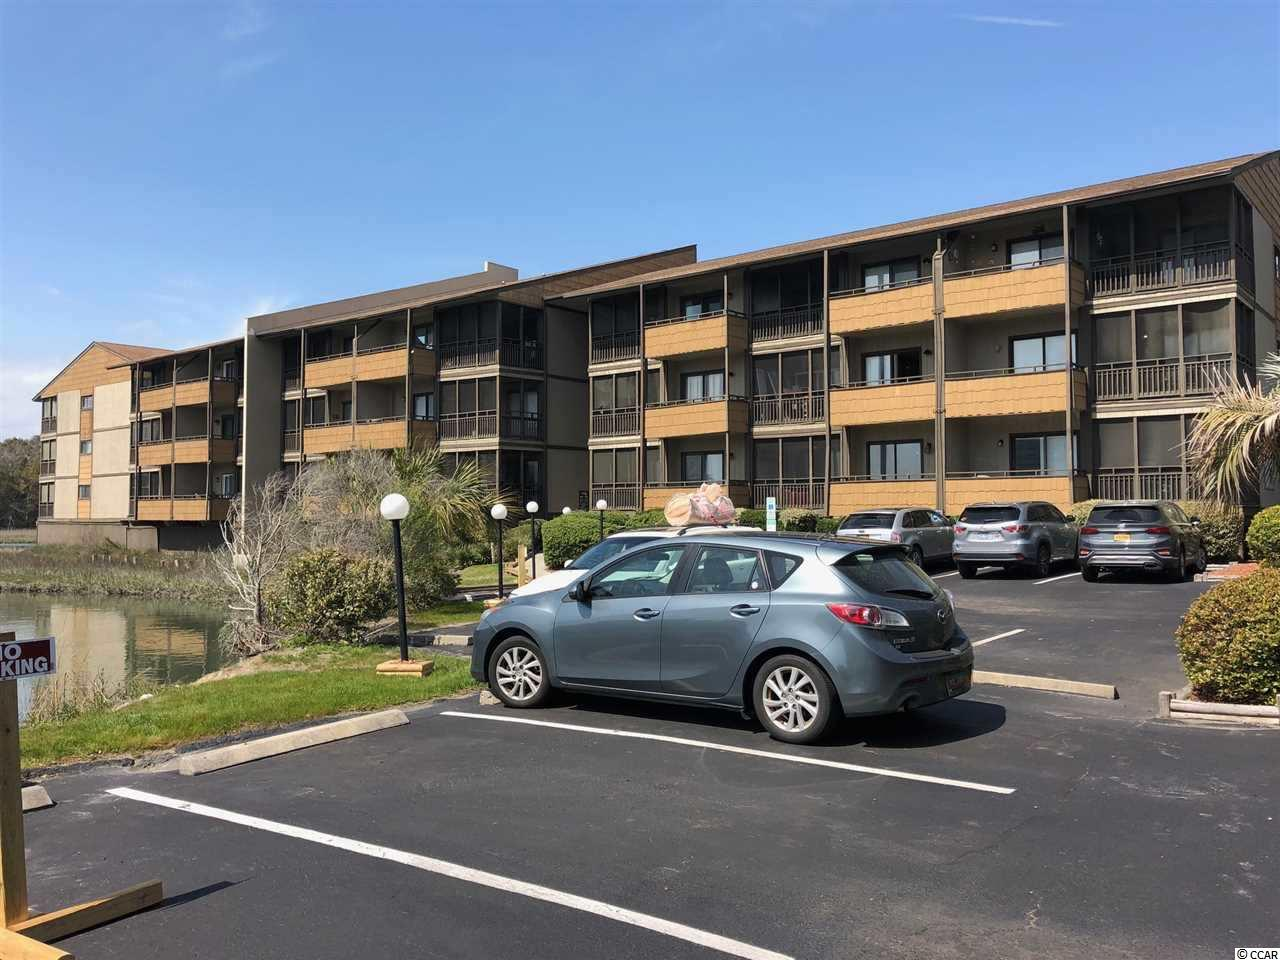 Don't miss this FULLY FURNISHED, 2nd floor, 2 bedroom unit in the quiet area of Arcadian Shores in Mariners Cove. 2nd floor units don't last long here as the buildings don't have elevators. The unit features a nice open kitchen and a living/dining room across with a very open marsh view. Unit has been very well taken care of with a hands on seller. Located in the centrally located but quiet area of Arcadian Shores minutes away from the top dining, shopping and entertainment Myrtle Beach and North Myrtle Beach has to offer. Don't miss your chance to see.